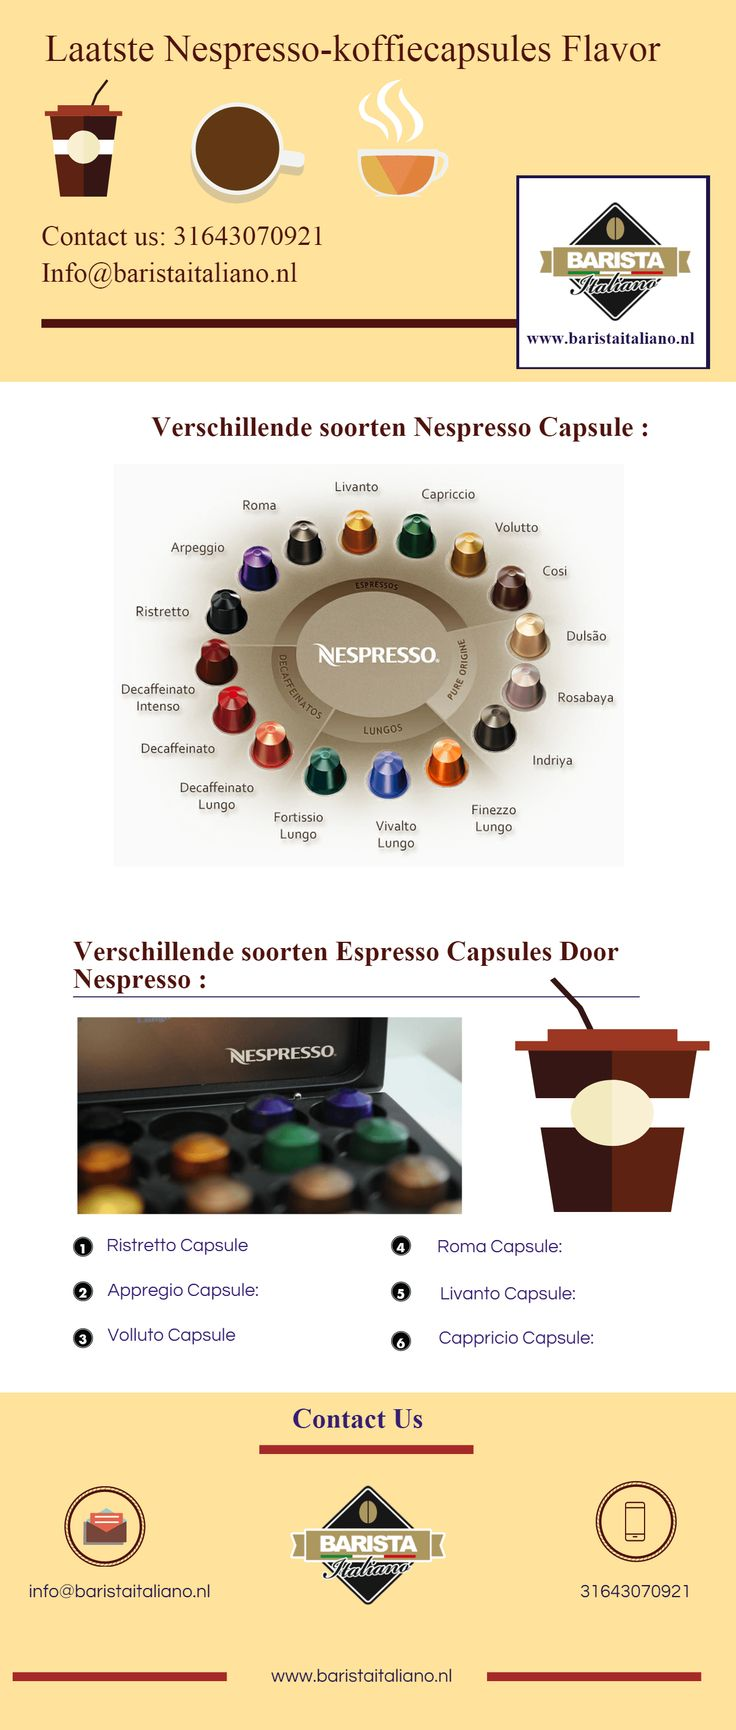 The Nespresso coffee cups were yummy. The flavors were unique and the variety of tastes great. That made ​​the choice quite difficult.